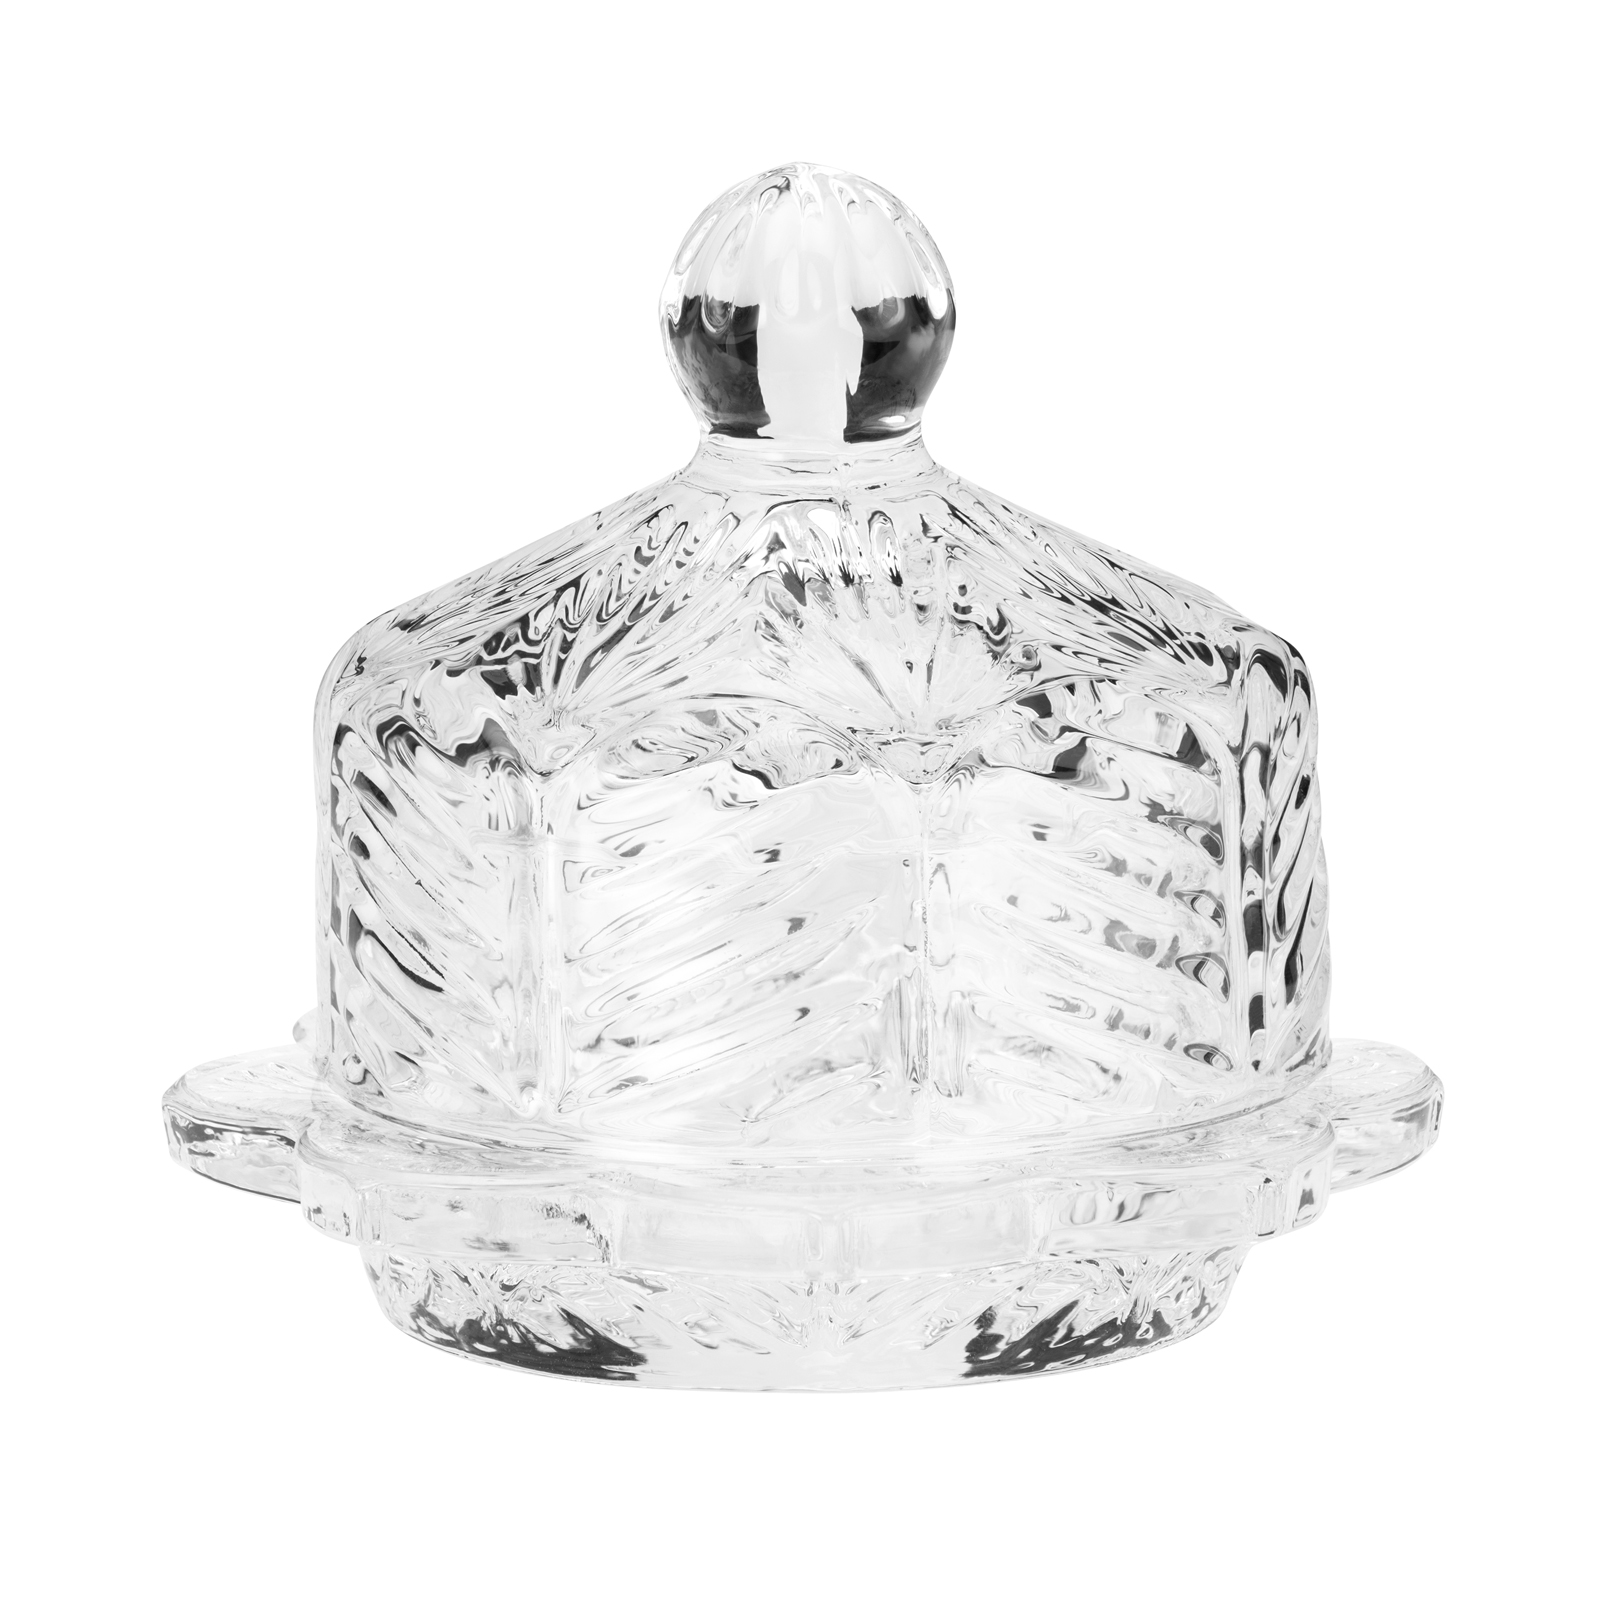 Eloise Floral Round Butter Dish, 3.5 inch length